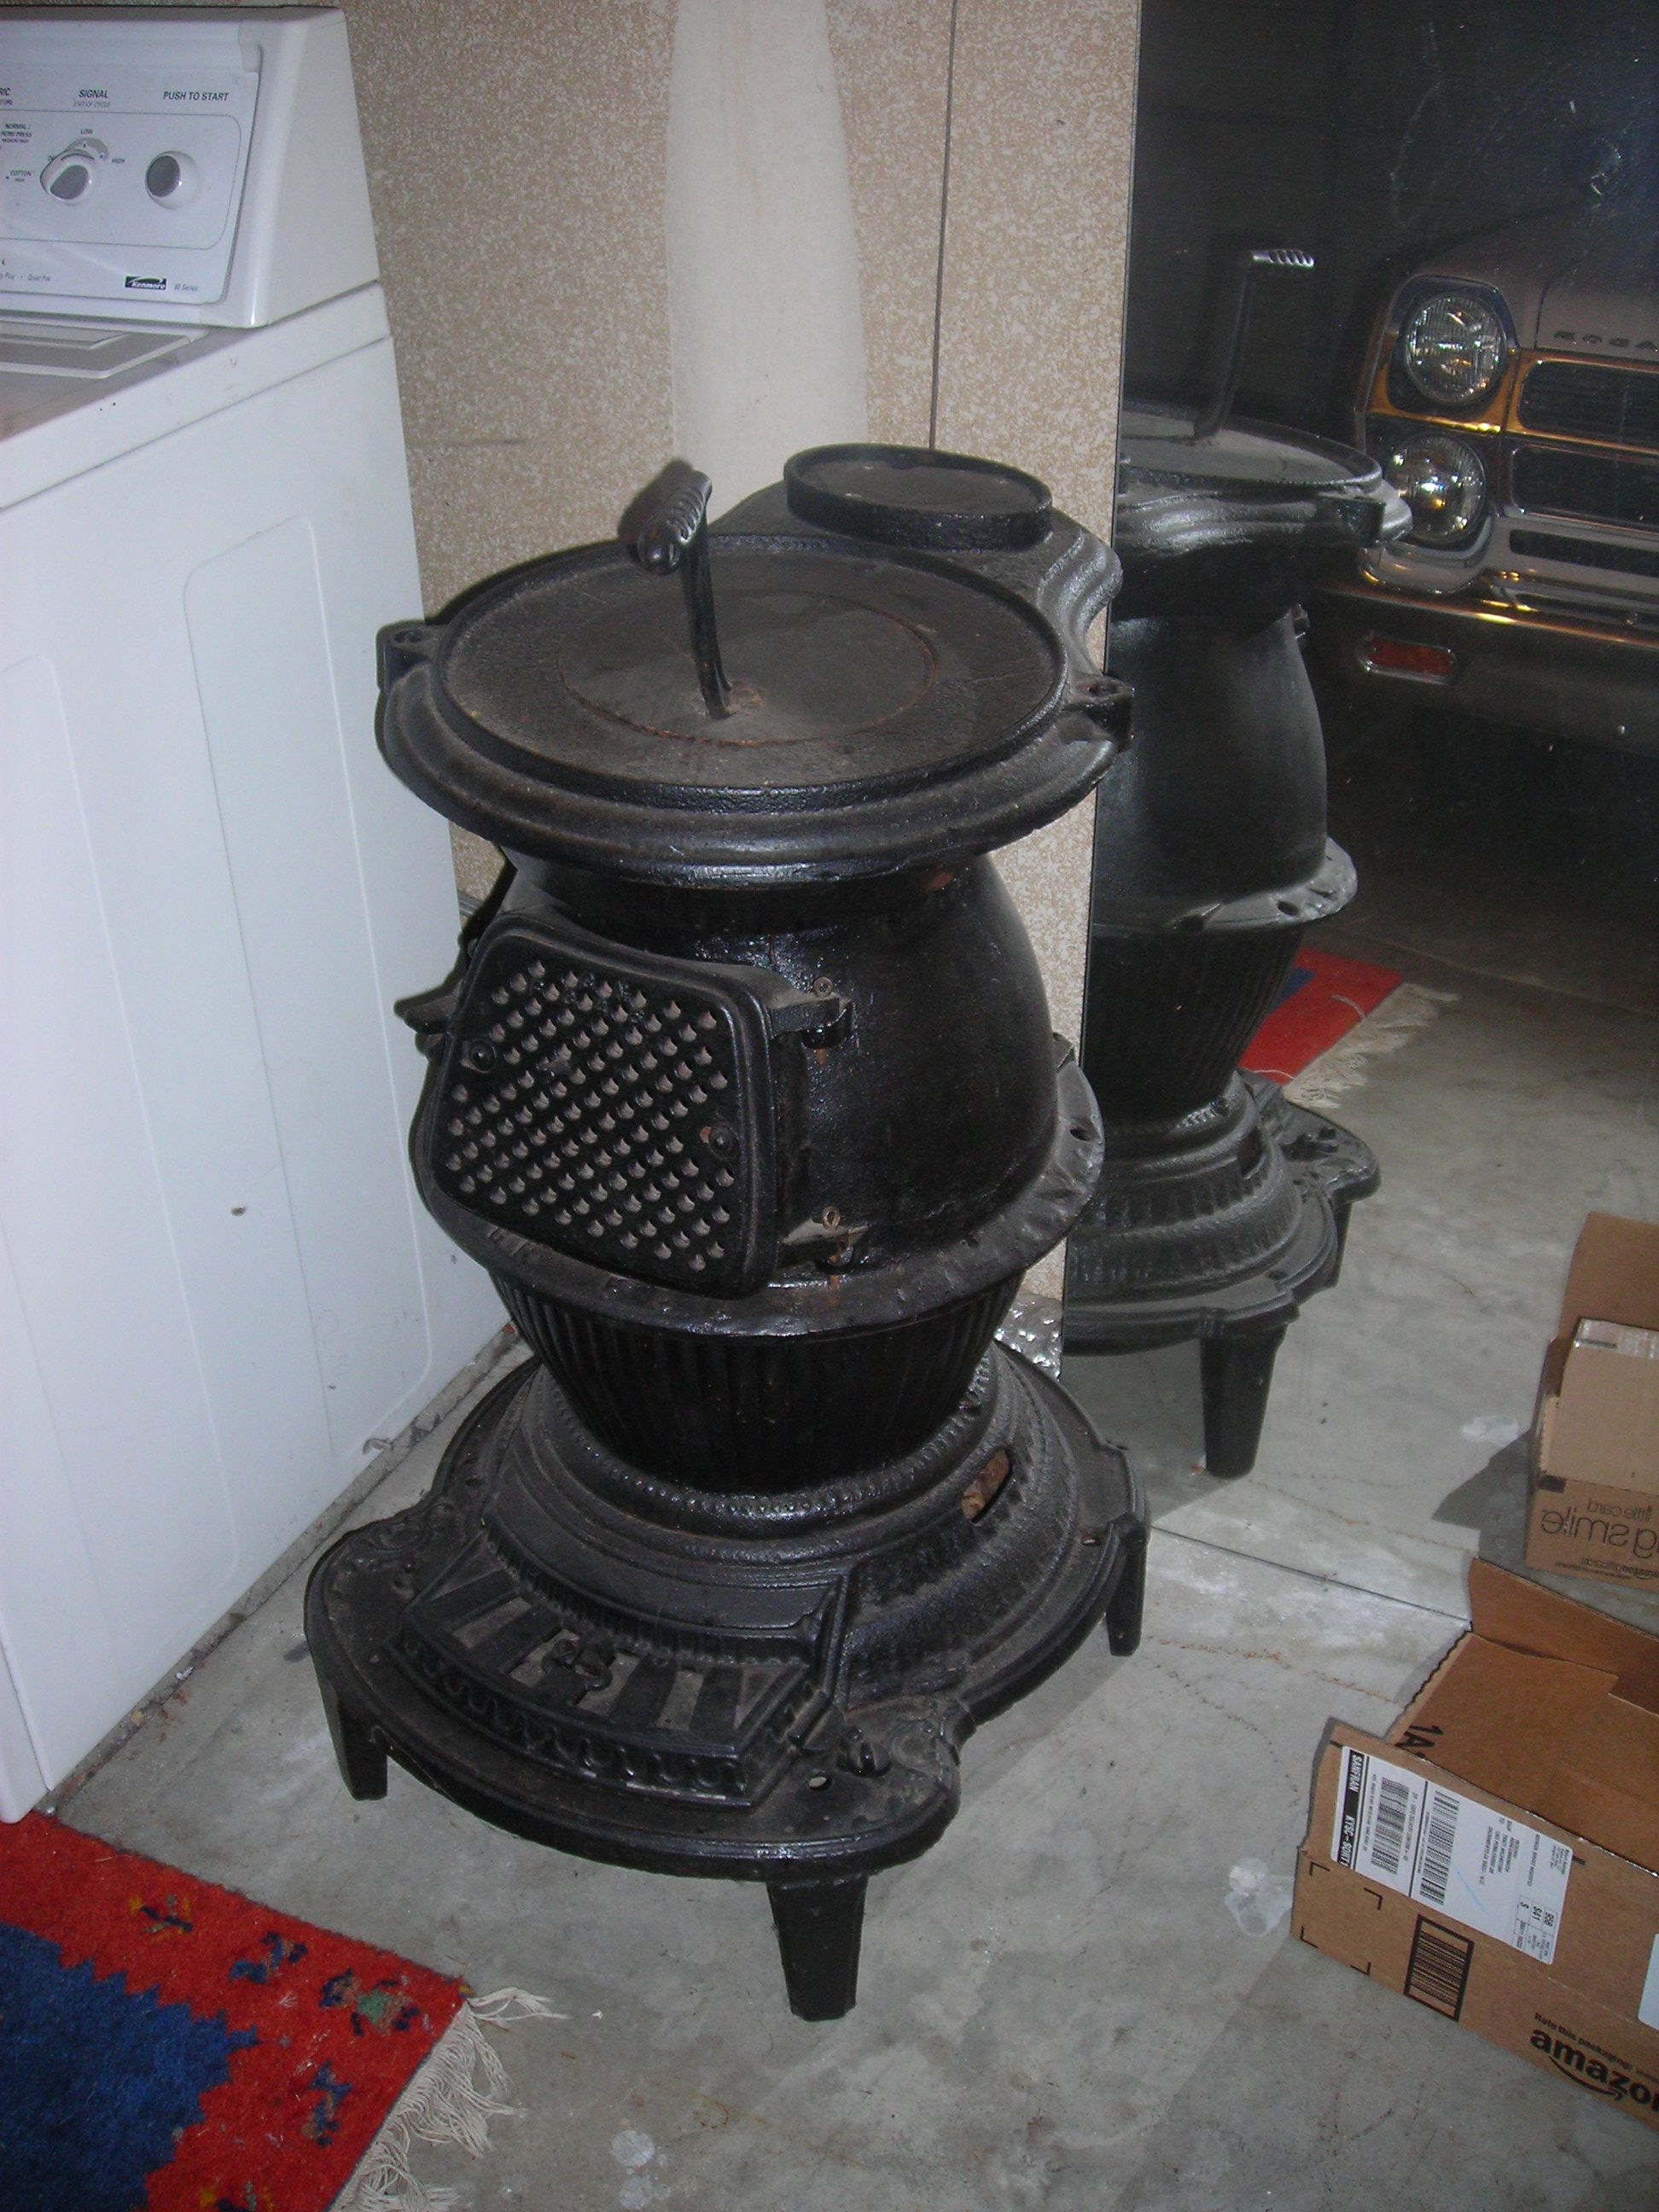 Caboose Pot Belly Stove http://www.justanswer.com/antiques/5ne1e-hi-i-pot-belly-stove-family.html